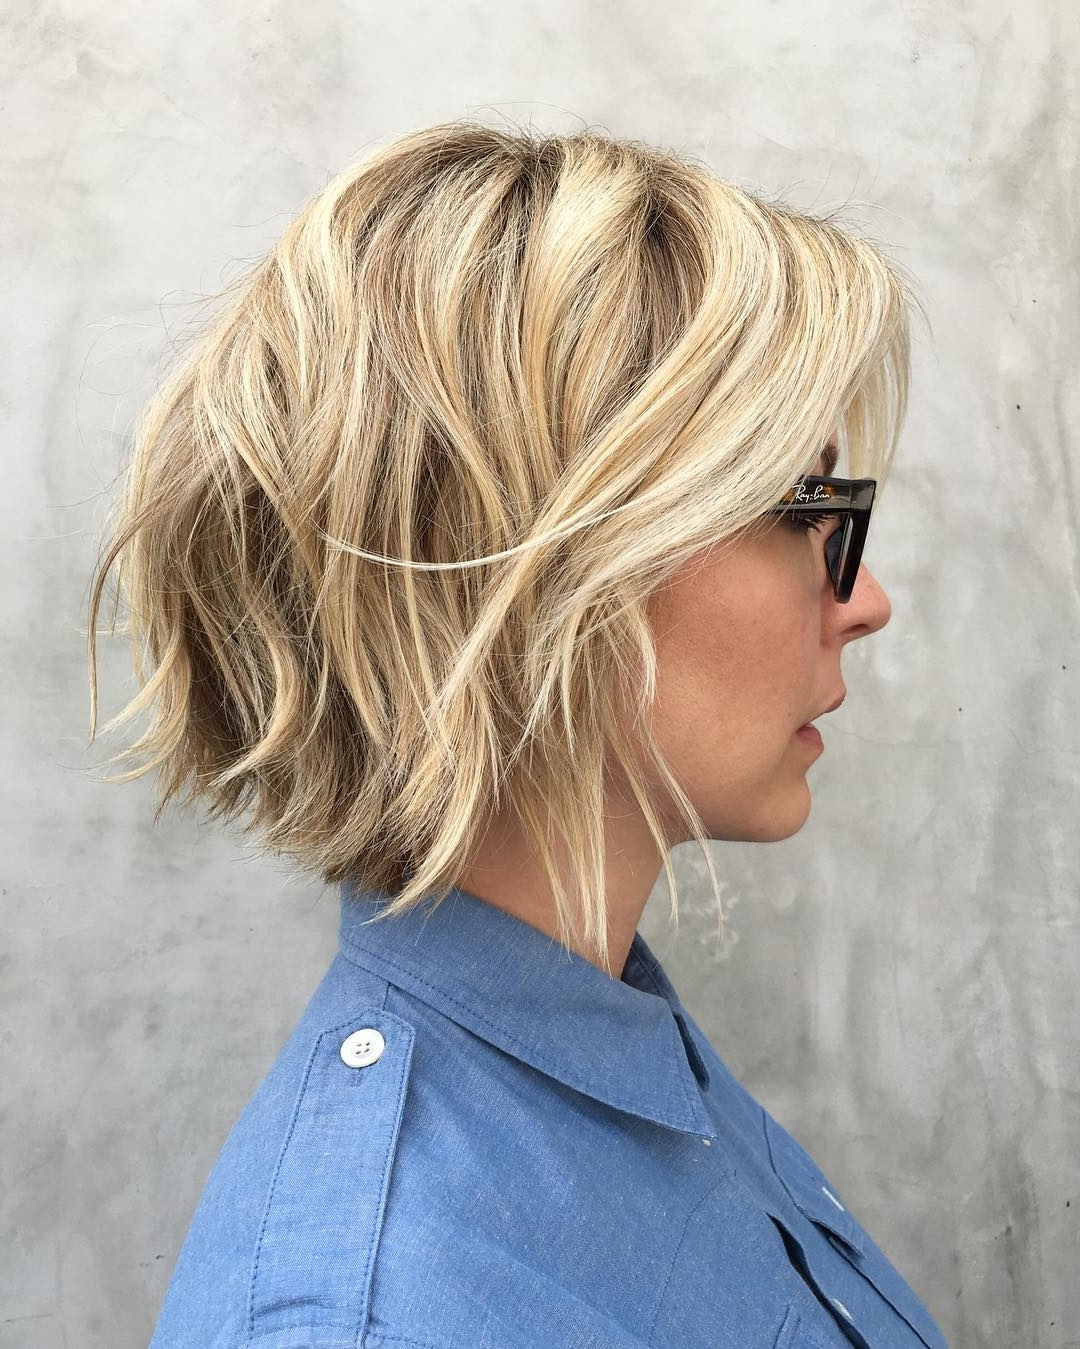 30 Trendiest Shaggy Bob Haircuts Of The Season Inside Recent Layered Shaggy Bob Hairstyles (View 3 of 15)